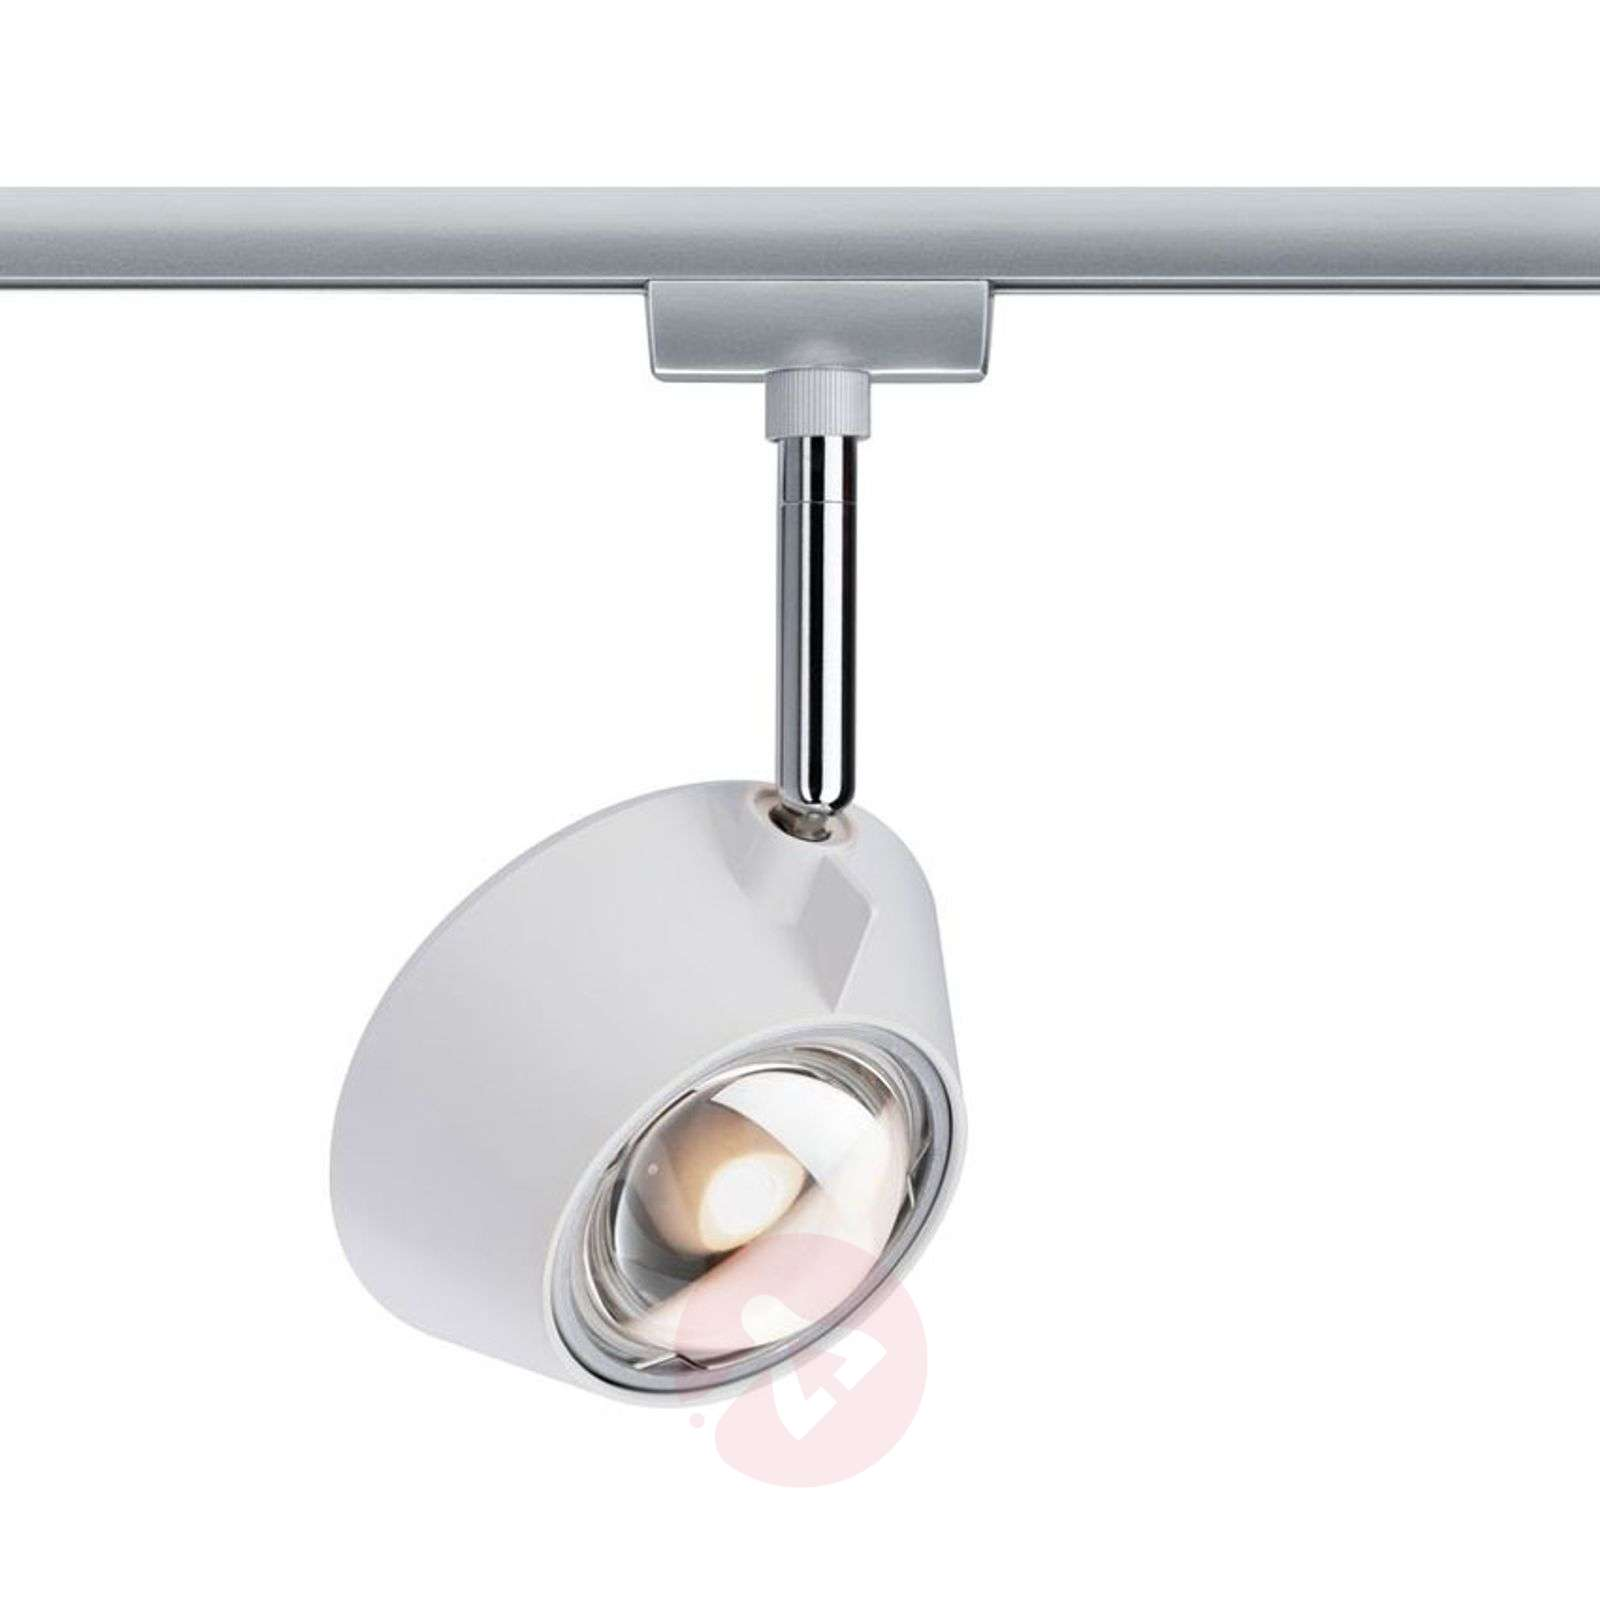 Paulmann URail spot LED Sabik chromé mat, dimmable-7601402-01